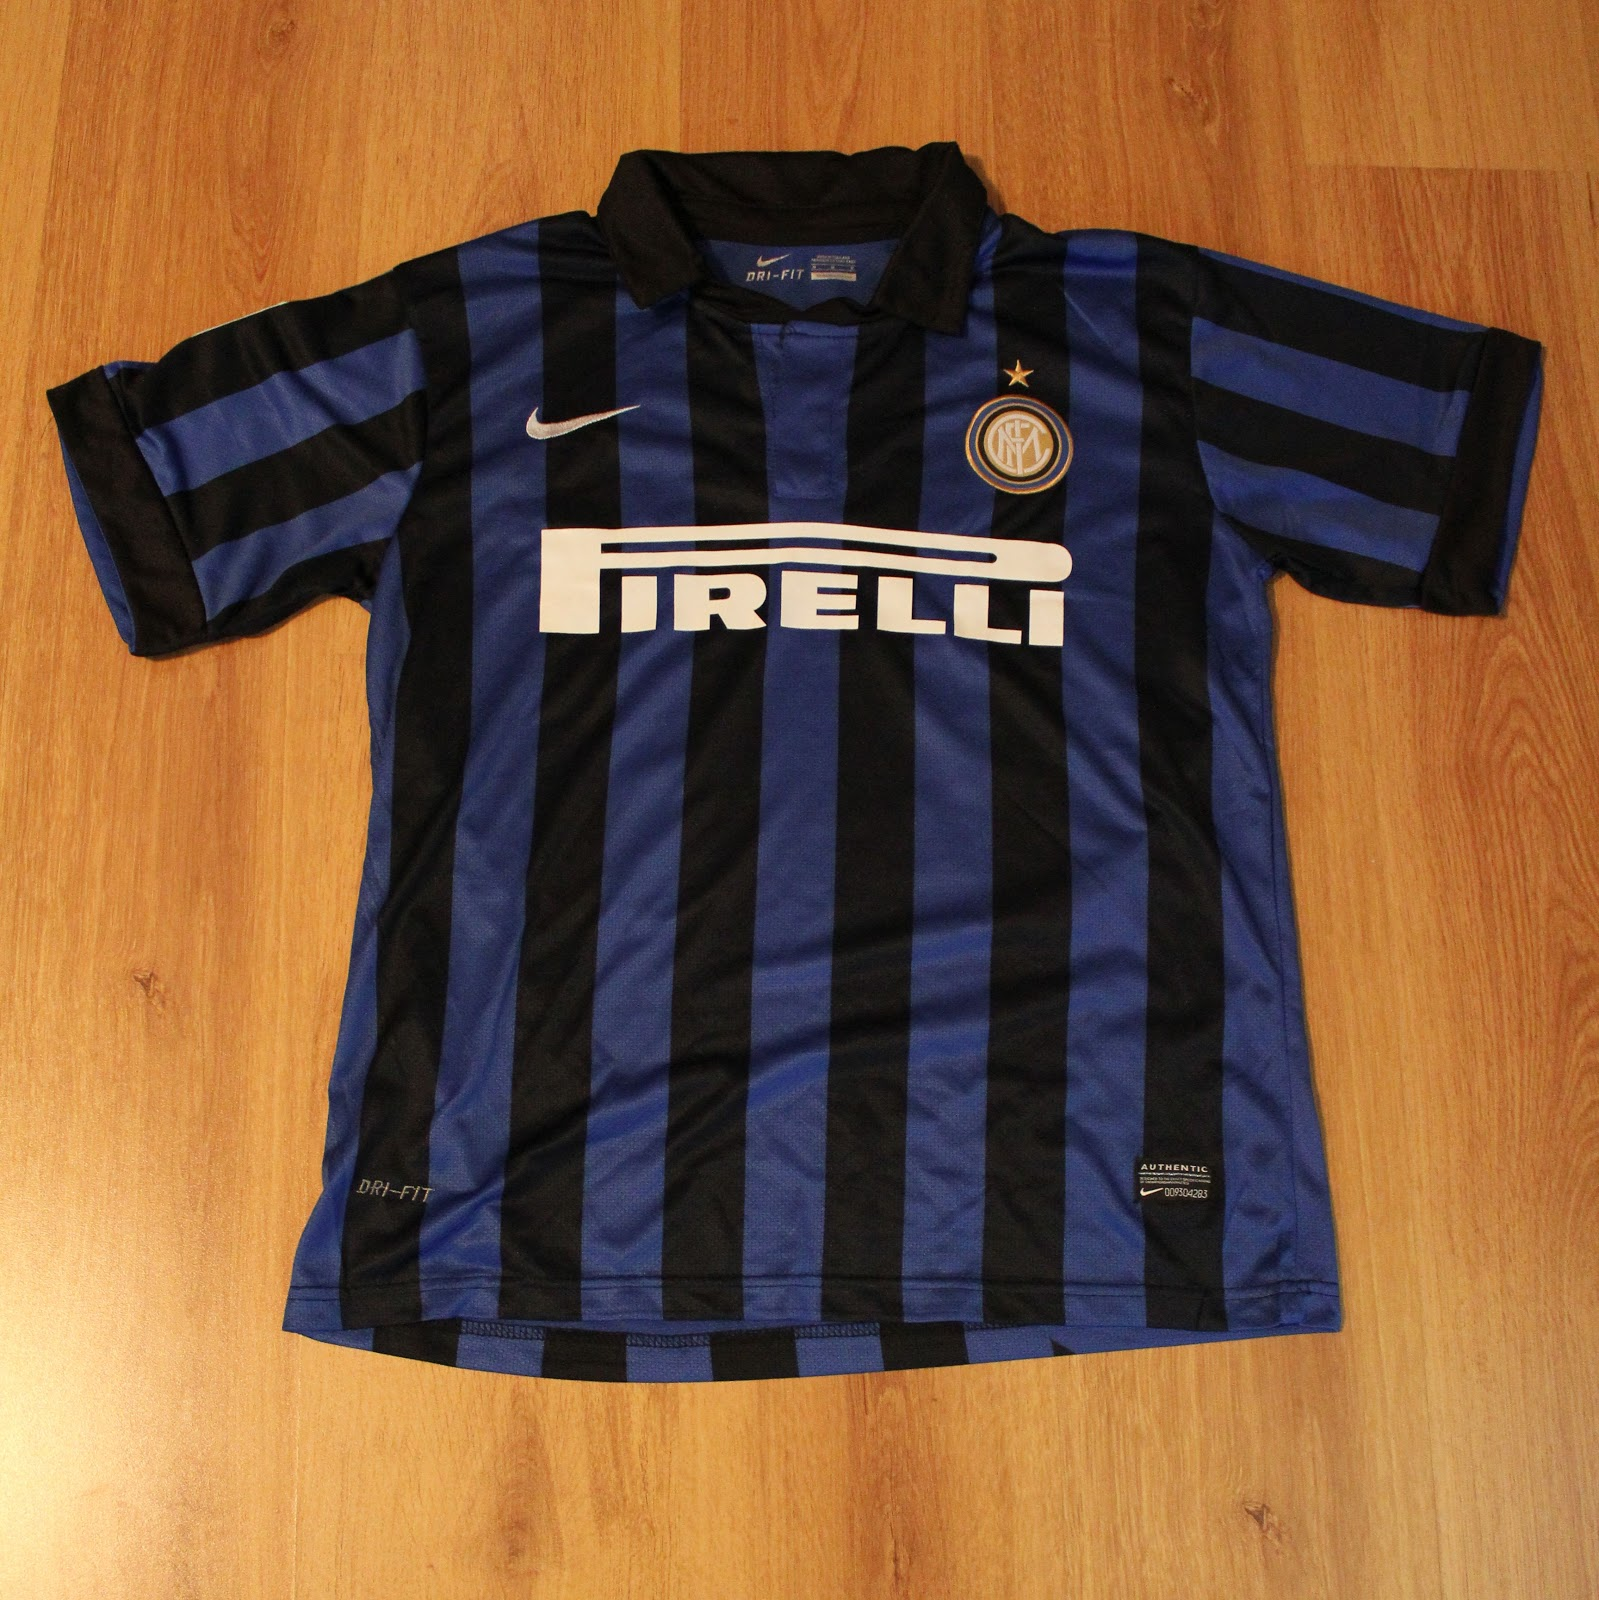 quality design 01b67 f3f38 Solana's football shirt collection: Inter Milan 2011/12 Home ...